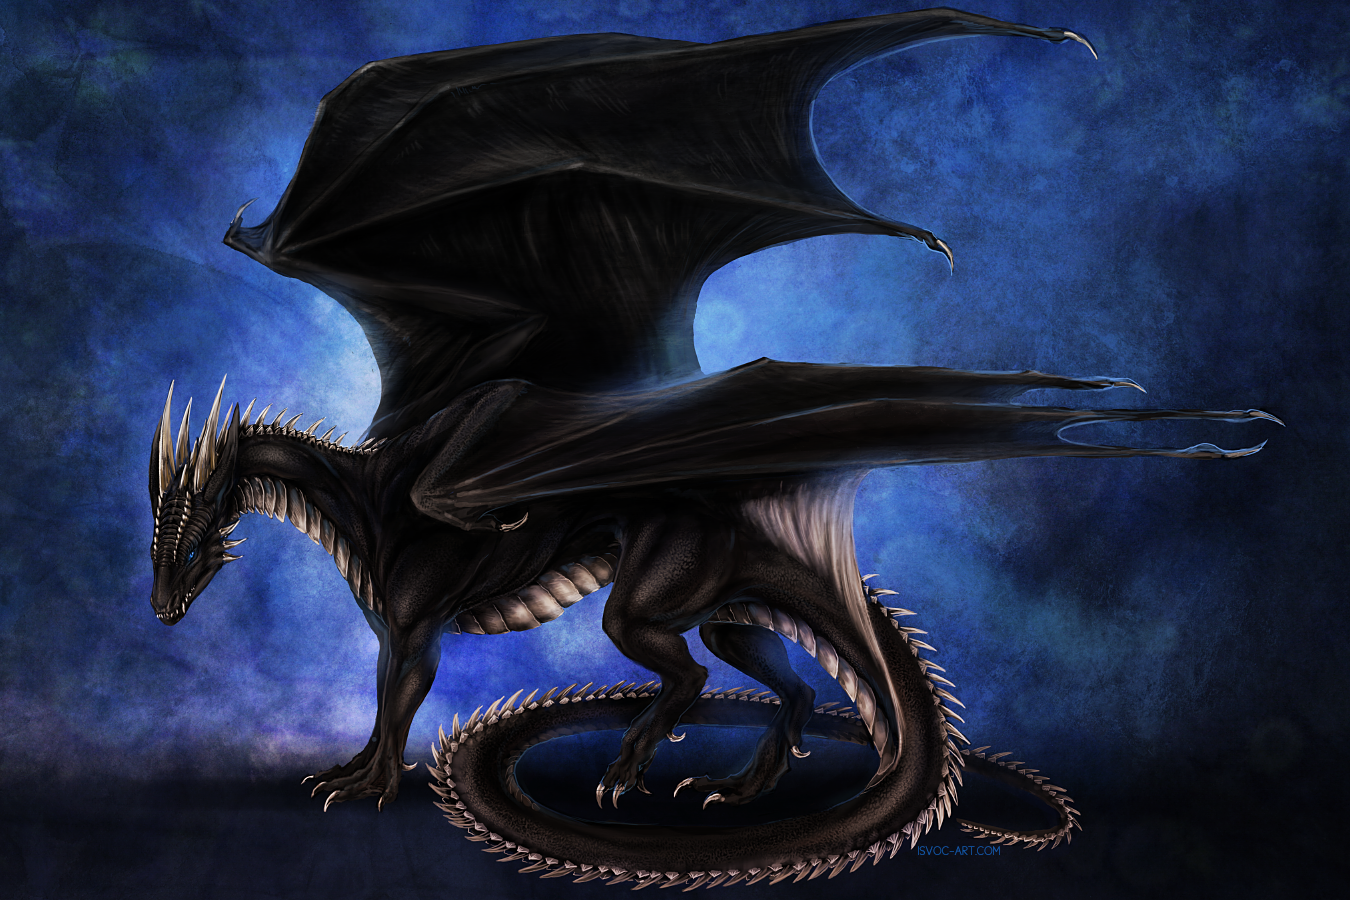 e926 ambiguous_gender black_scales blue_eyes claws detailed dragon feral gradient_background horn isvoc koori membranous_wings nude scales scalie simple_background smooth_horn solo spines standing white_scales wings